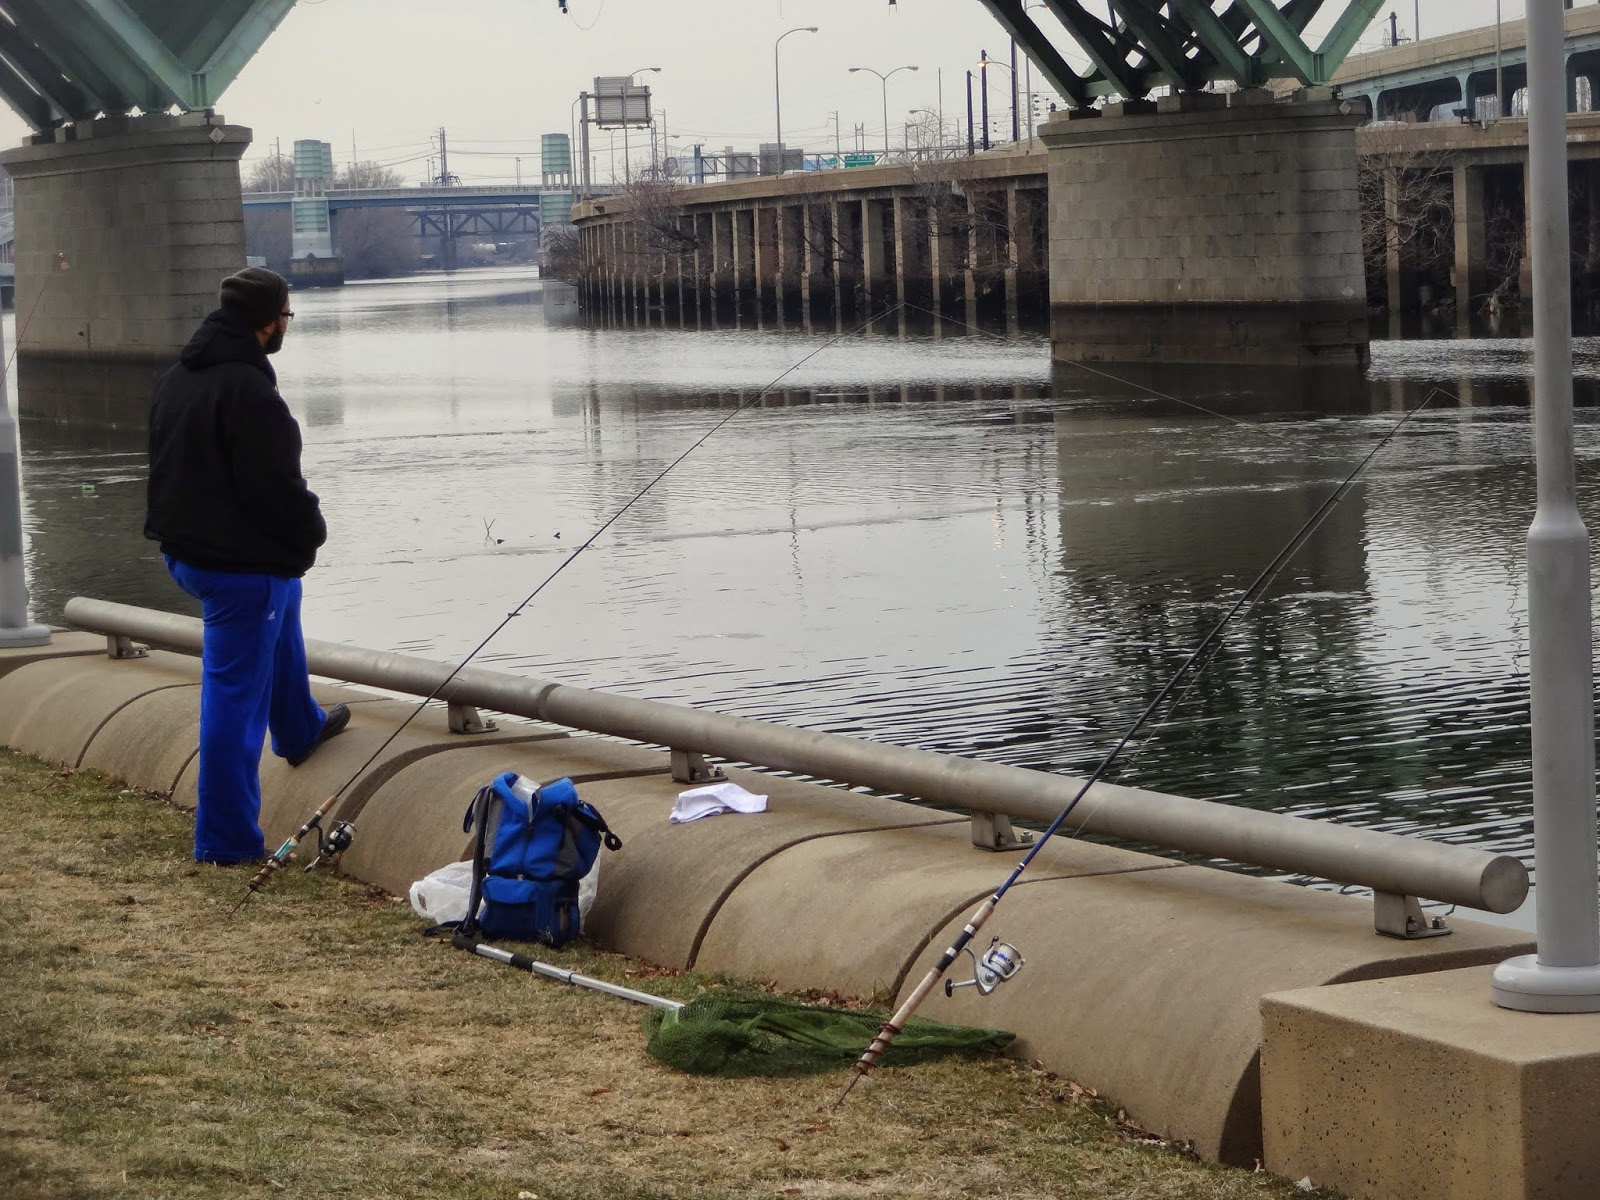 Extreme philly fishing february fishing sessions 02 08 for Catfish fishing gear